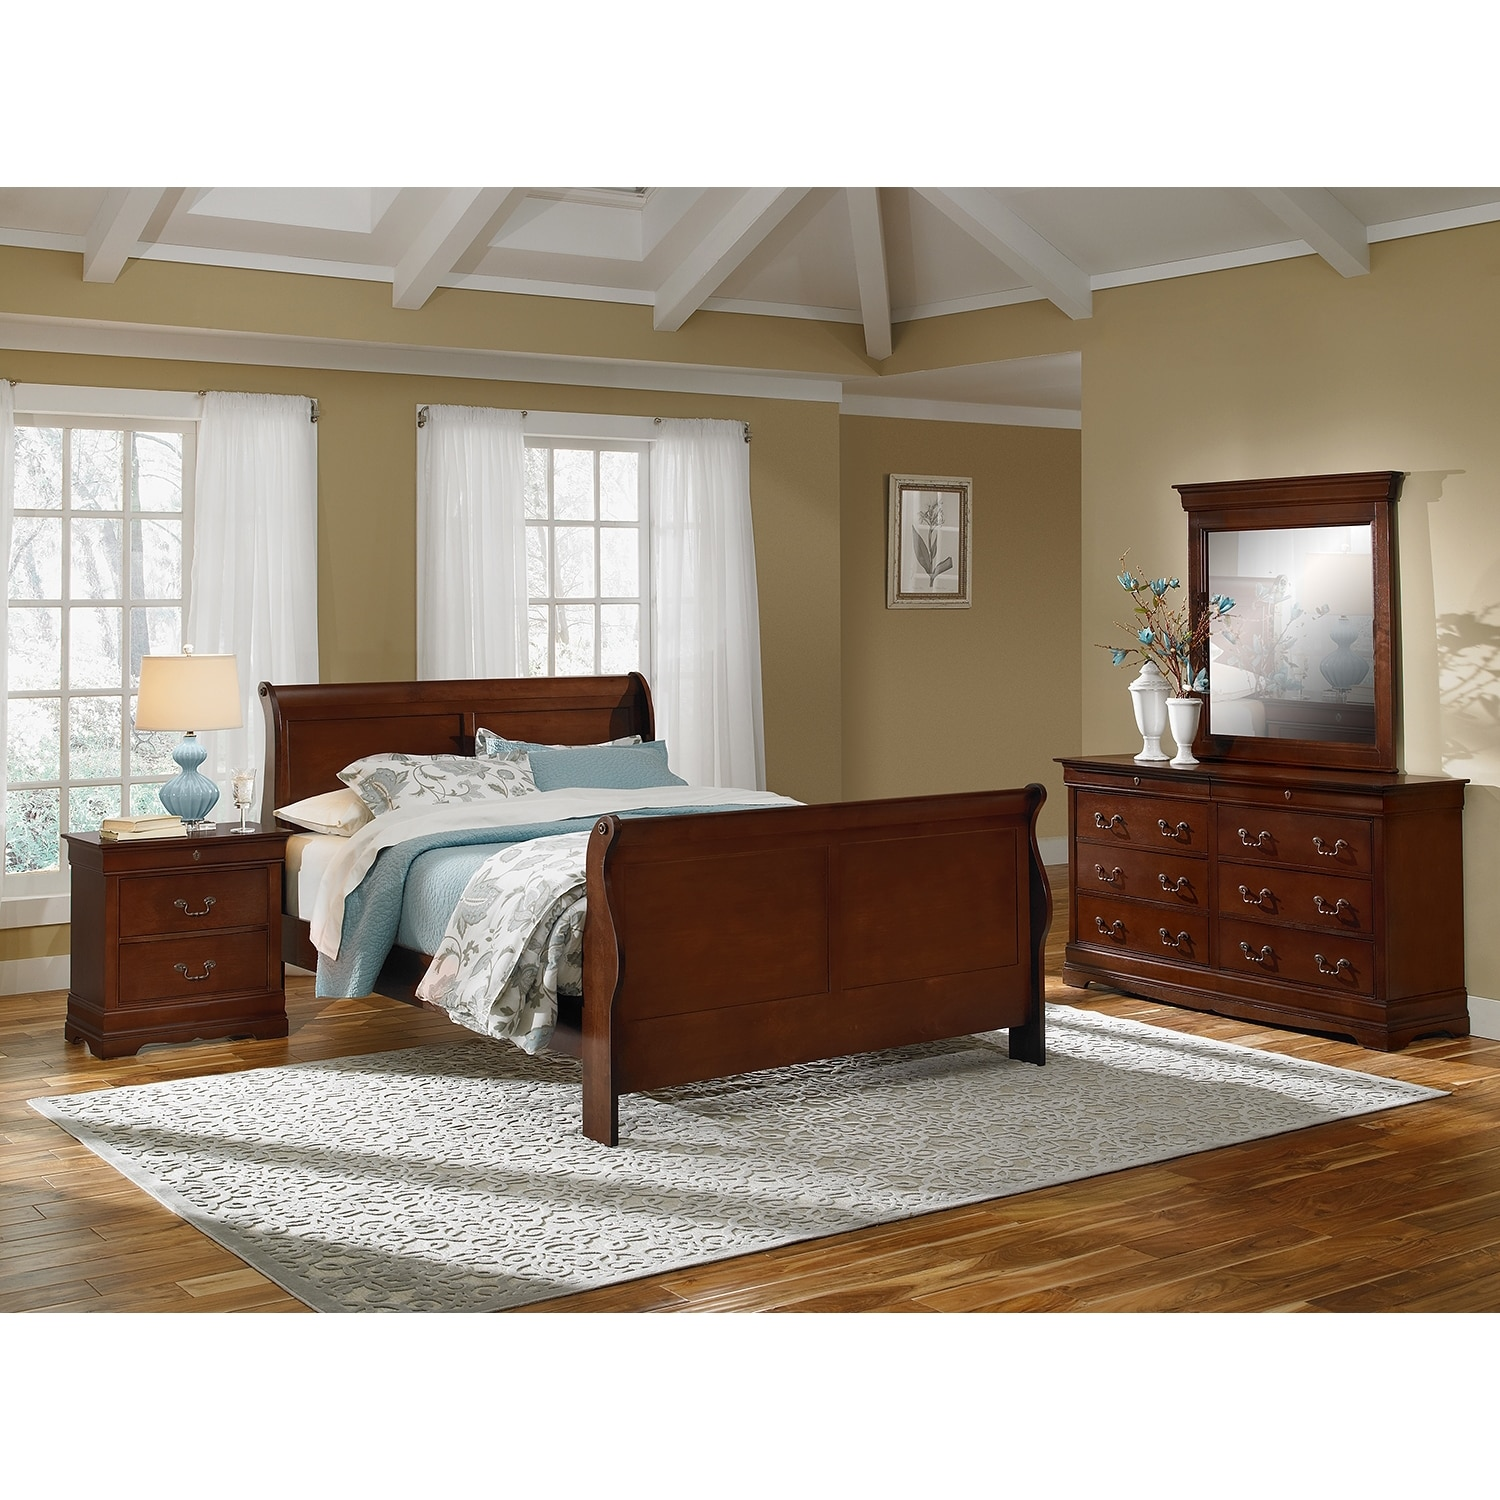 Bedroom Furniture - Neo Classic 6-Piece King Bedroom Set - Cherry